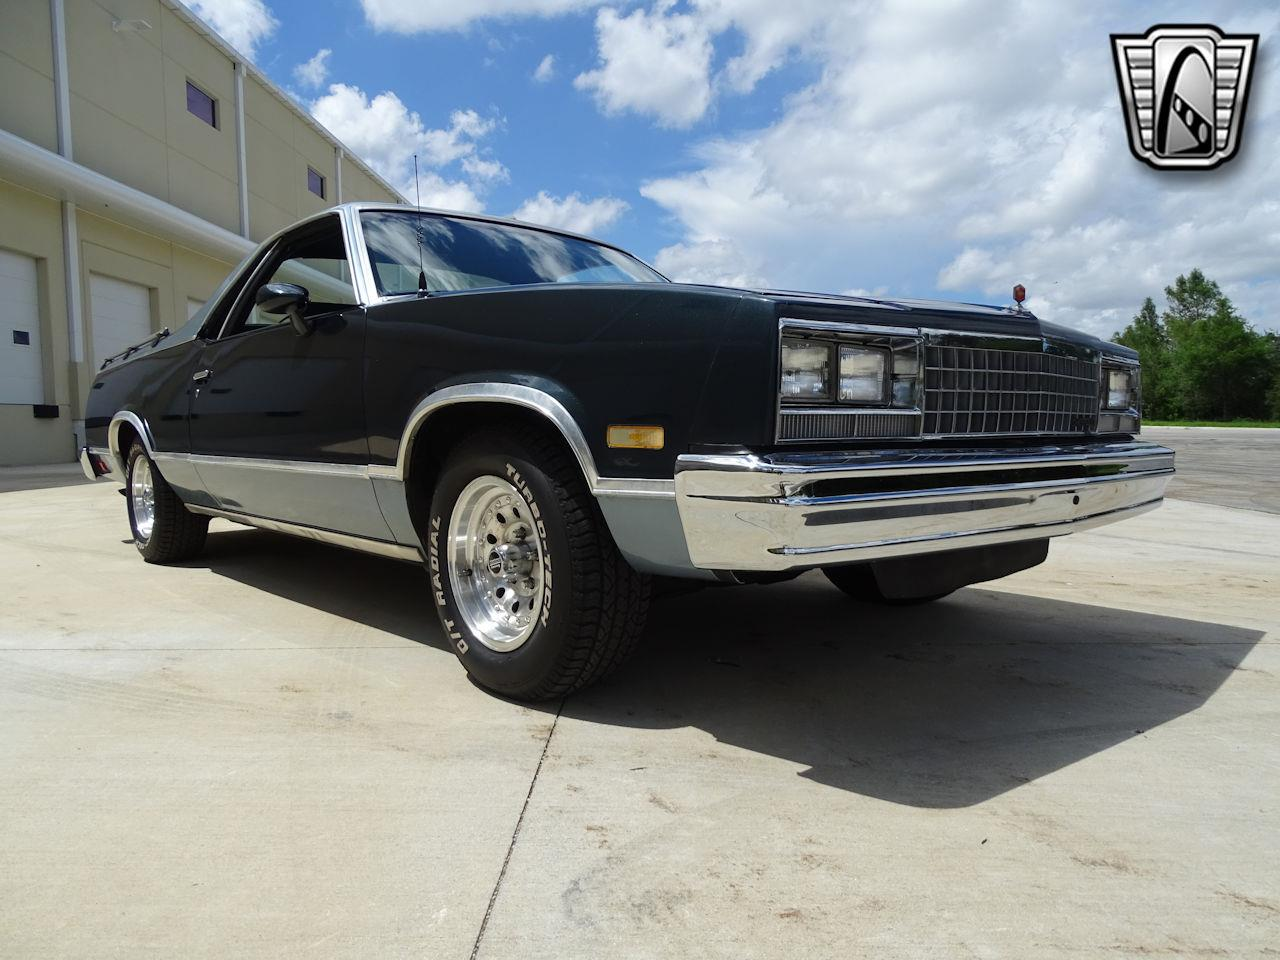 1985 Chevrolet El Camino (CC-1375438) for sale in O'Fallon, Illinois